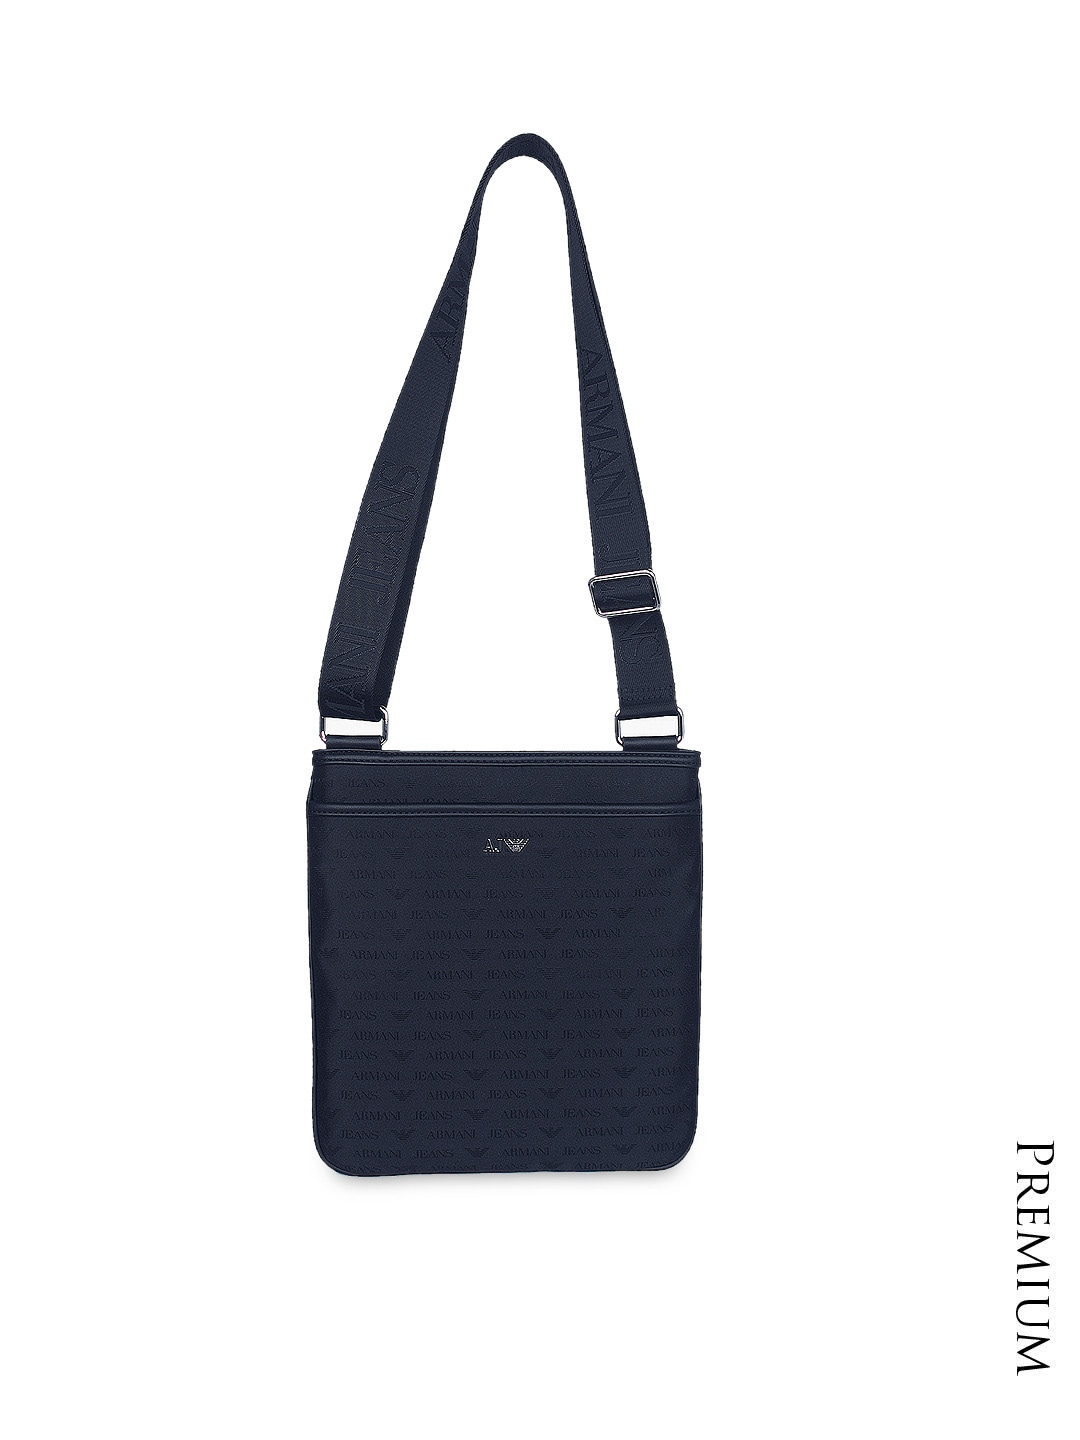 499c087f5d9e Armani jeans 7345-navy Navy Printed Sling Bag - Best Price in India ...